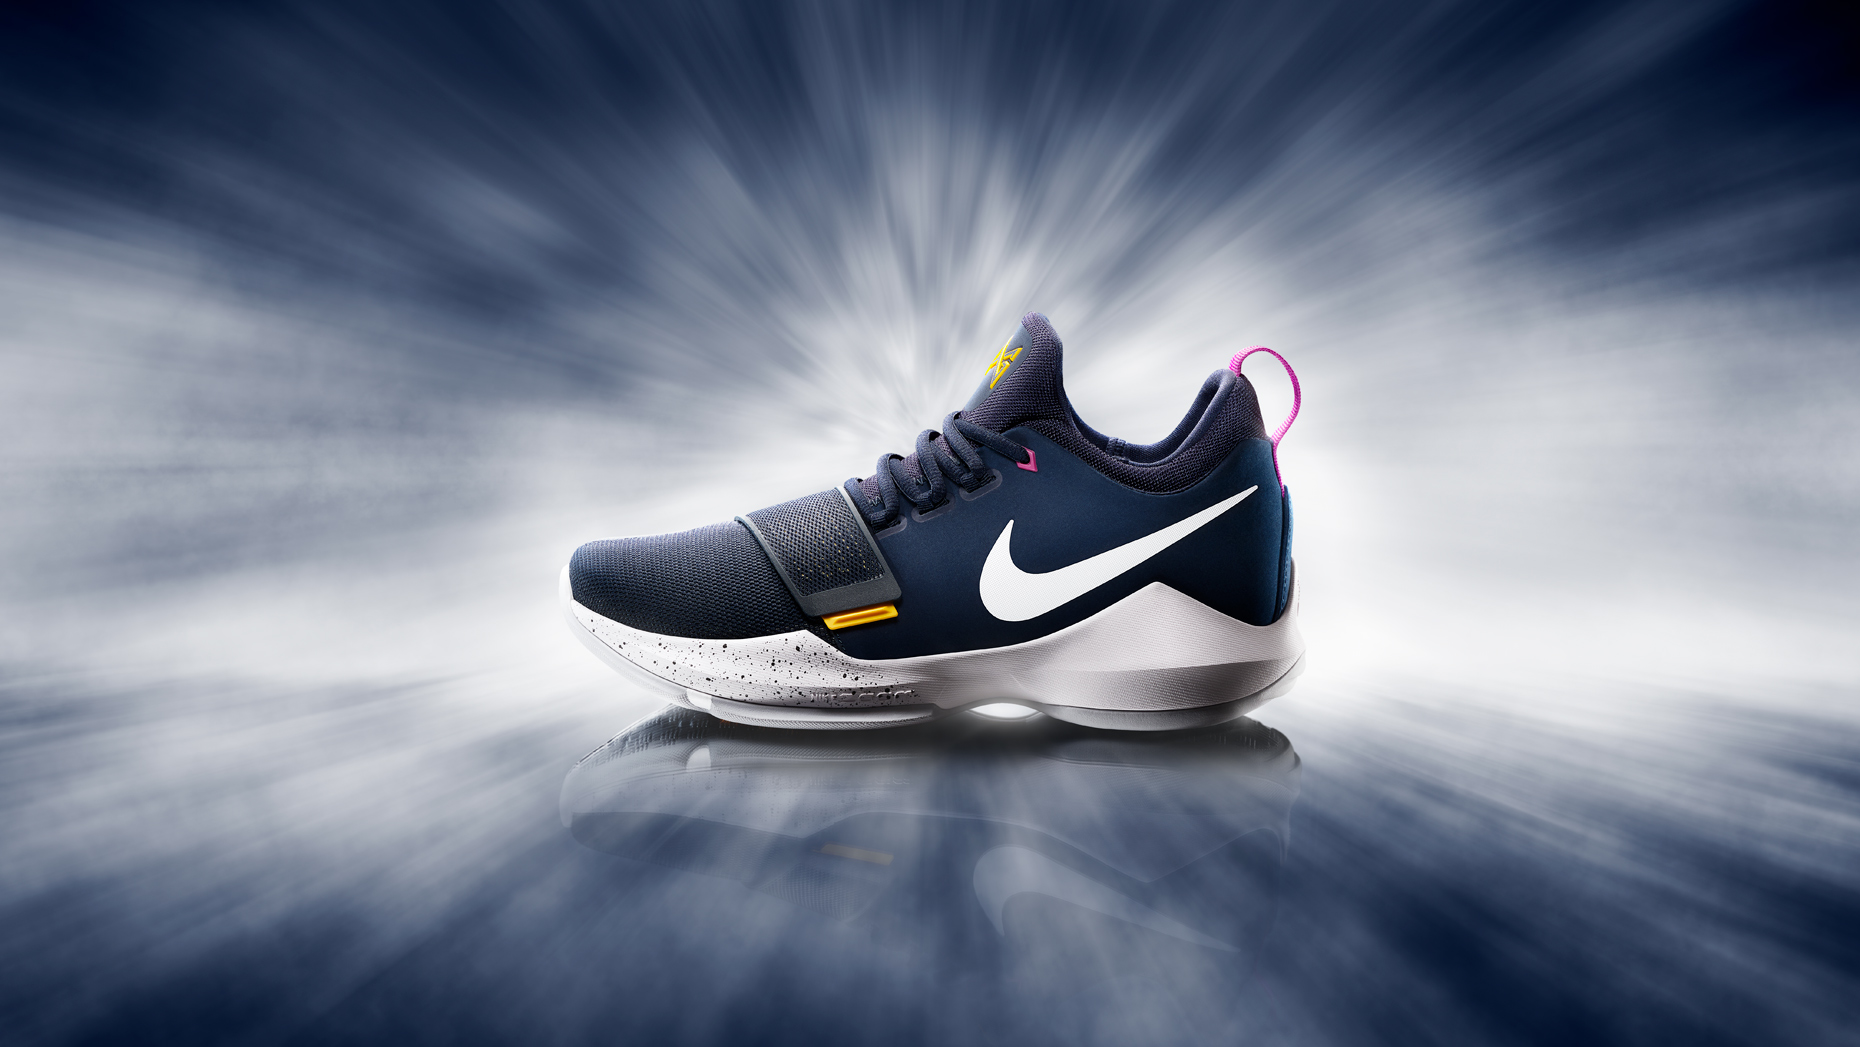 Nike Footwear Image Effects, Retouching and Environment Creation